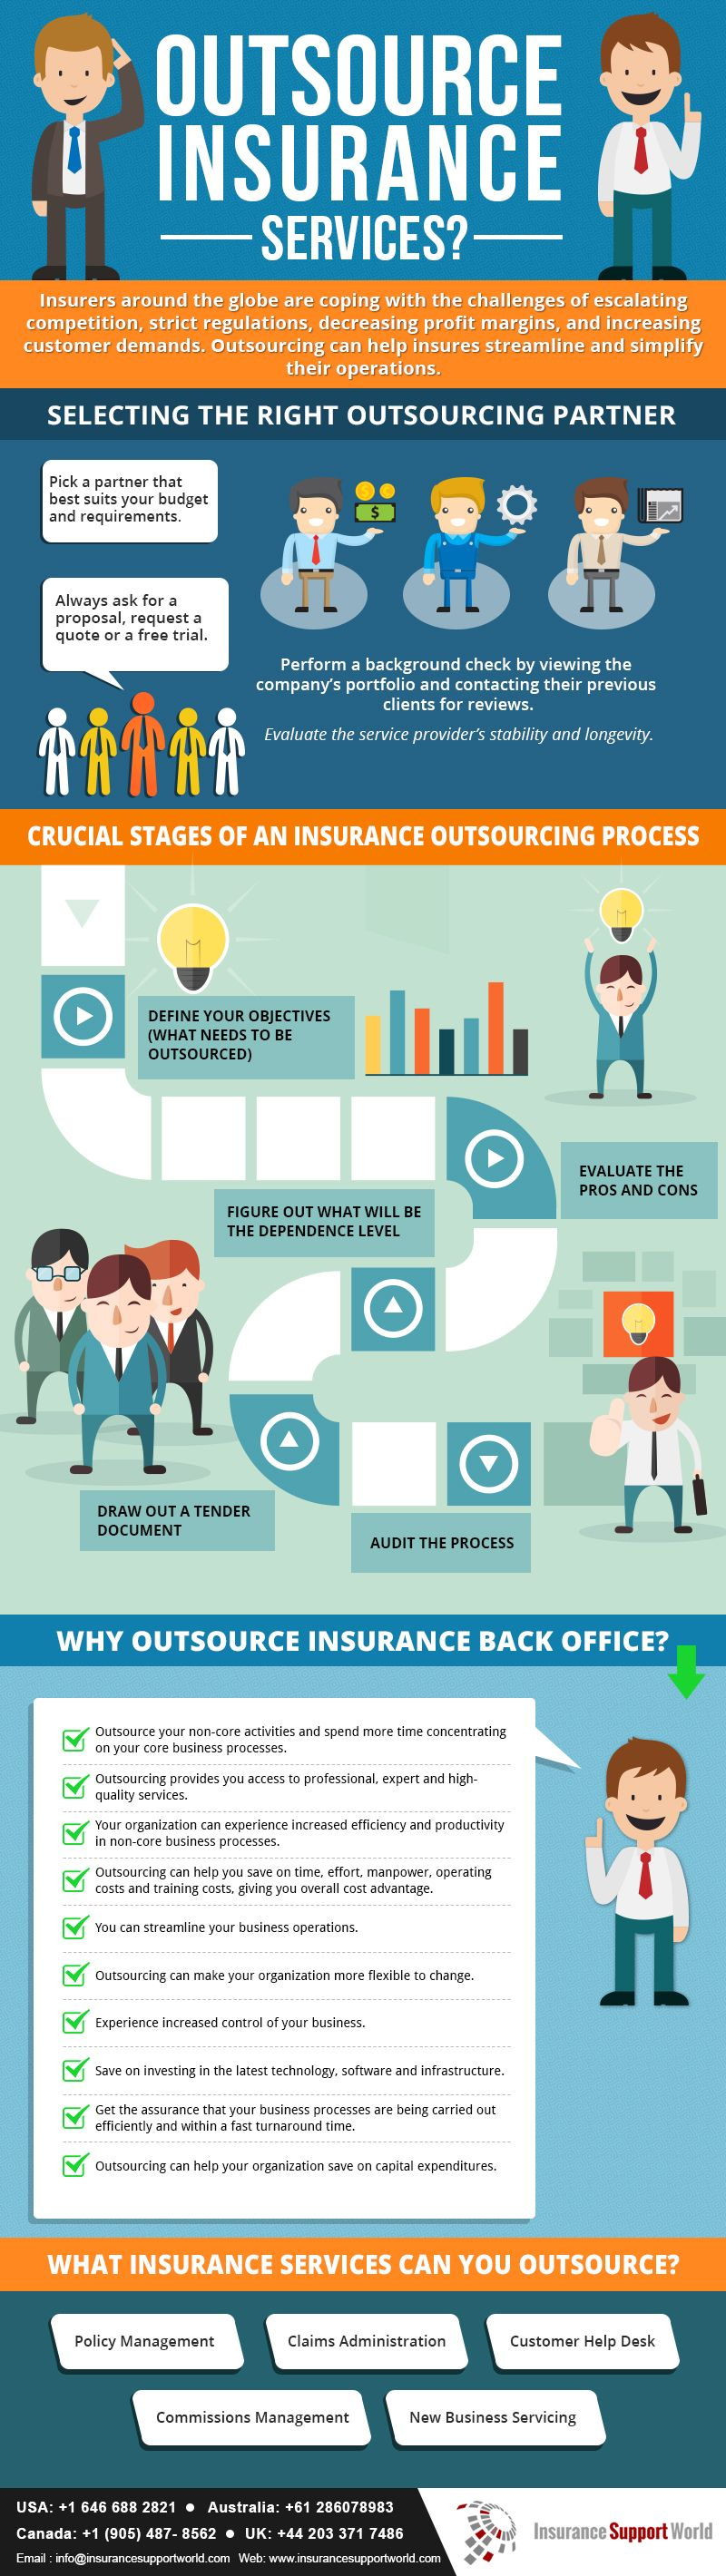 Benefits Of Outsourcing Insurance Services Infographic Health Insurance Humor Health Insurance India Infographic Health